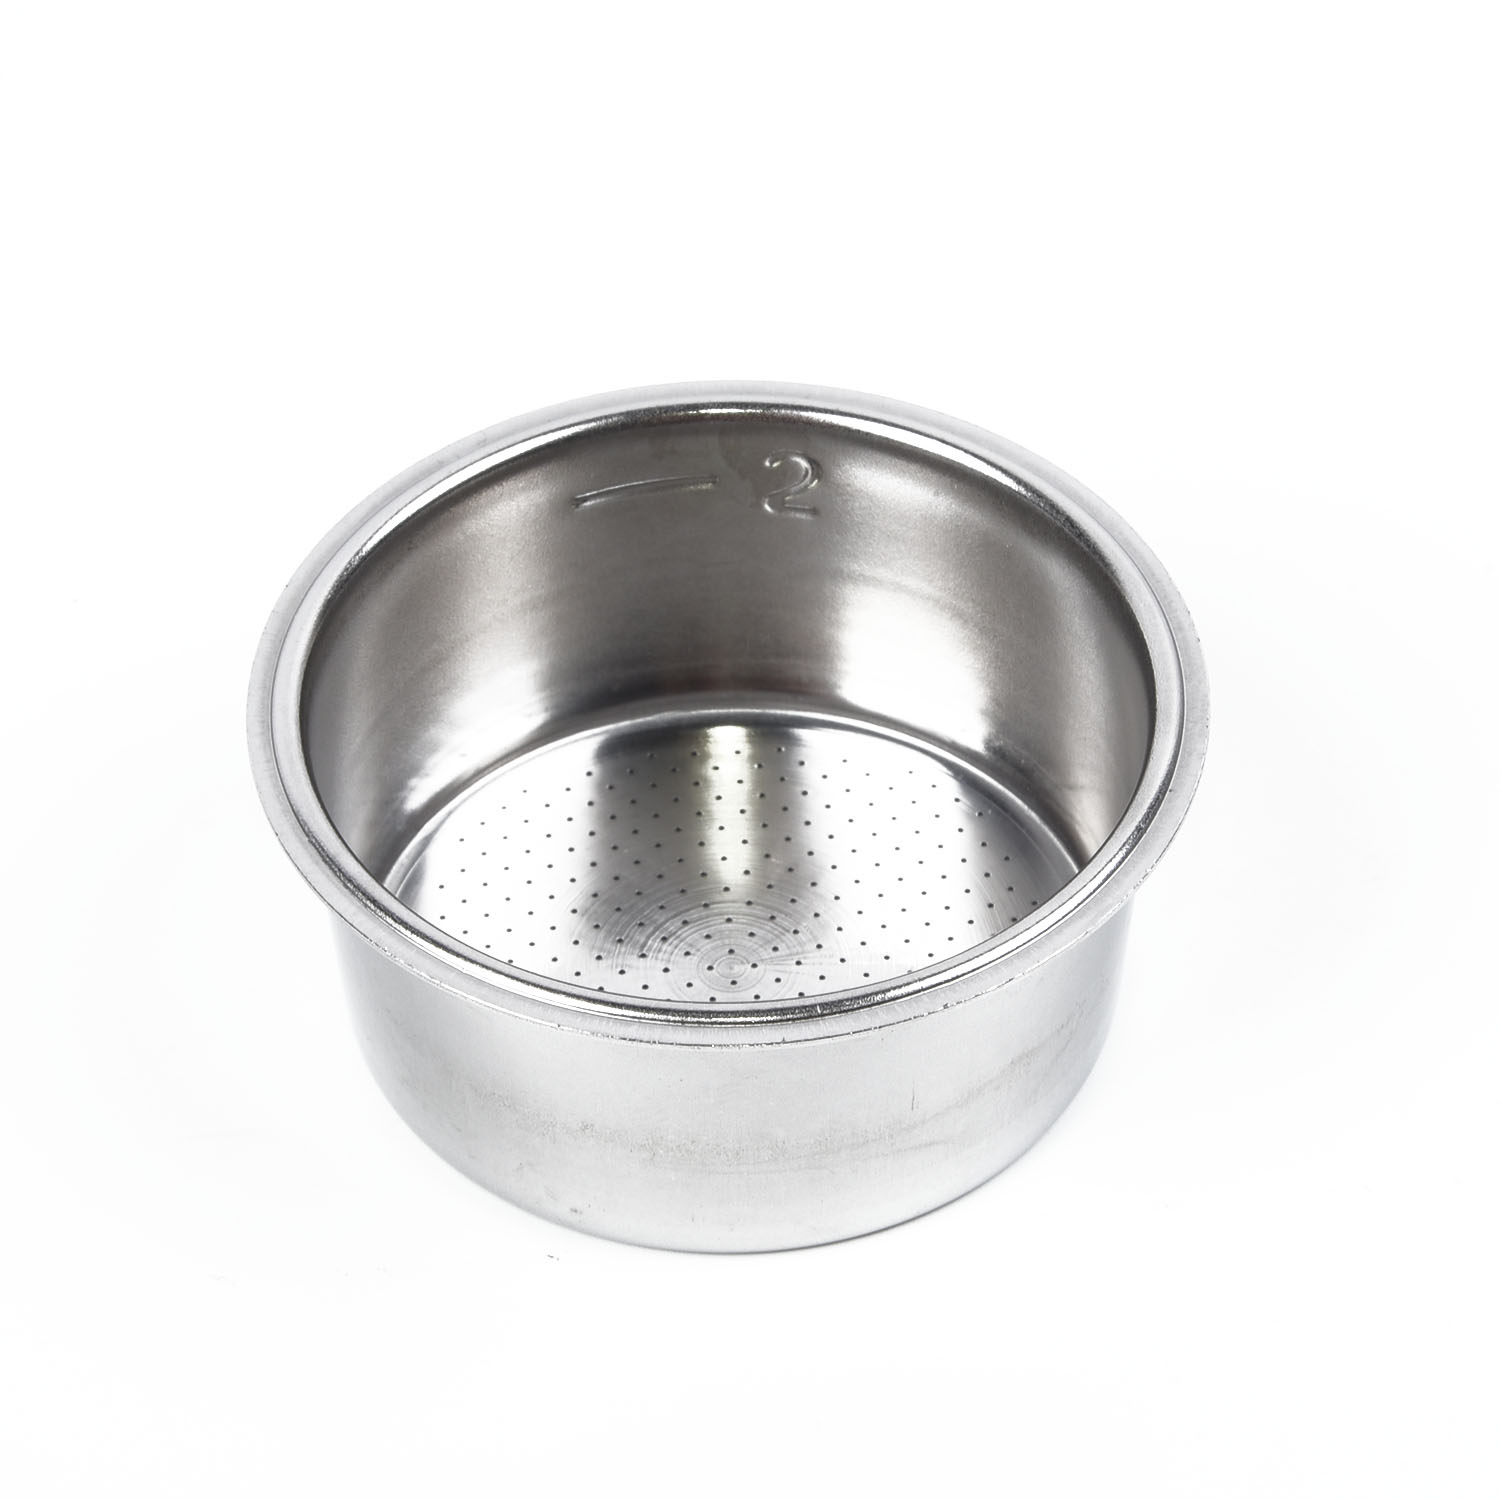 51mm Stainless Steel Coffee Filter Refillable Non Pressurized For Breville Delonghi Krups Coffee Capsule Coffeeware